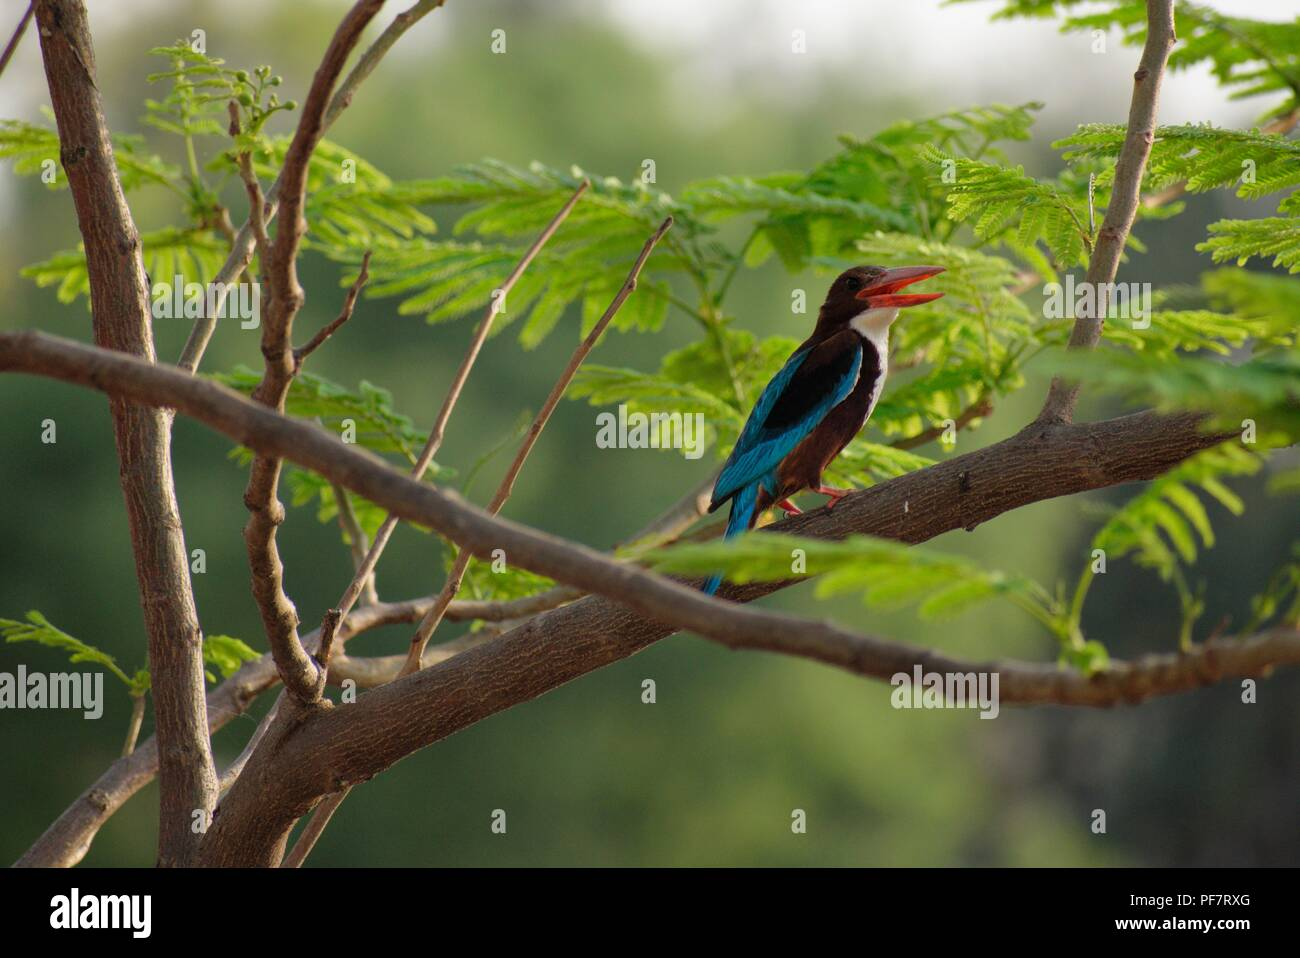 White Throated kingfisher is a tree kingfisher, widely distributed in Asia from Turkey east through the Indian subcontinent - Stock Image